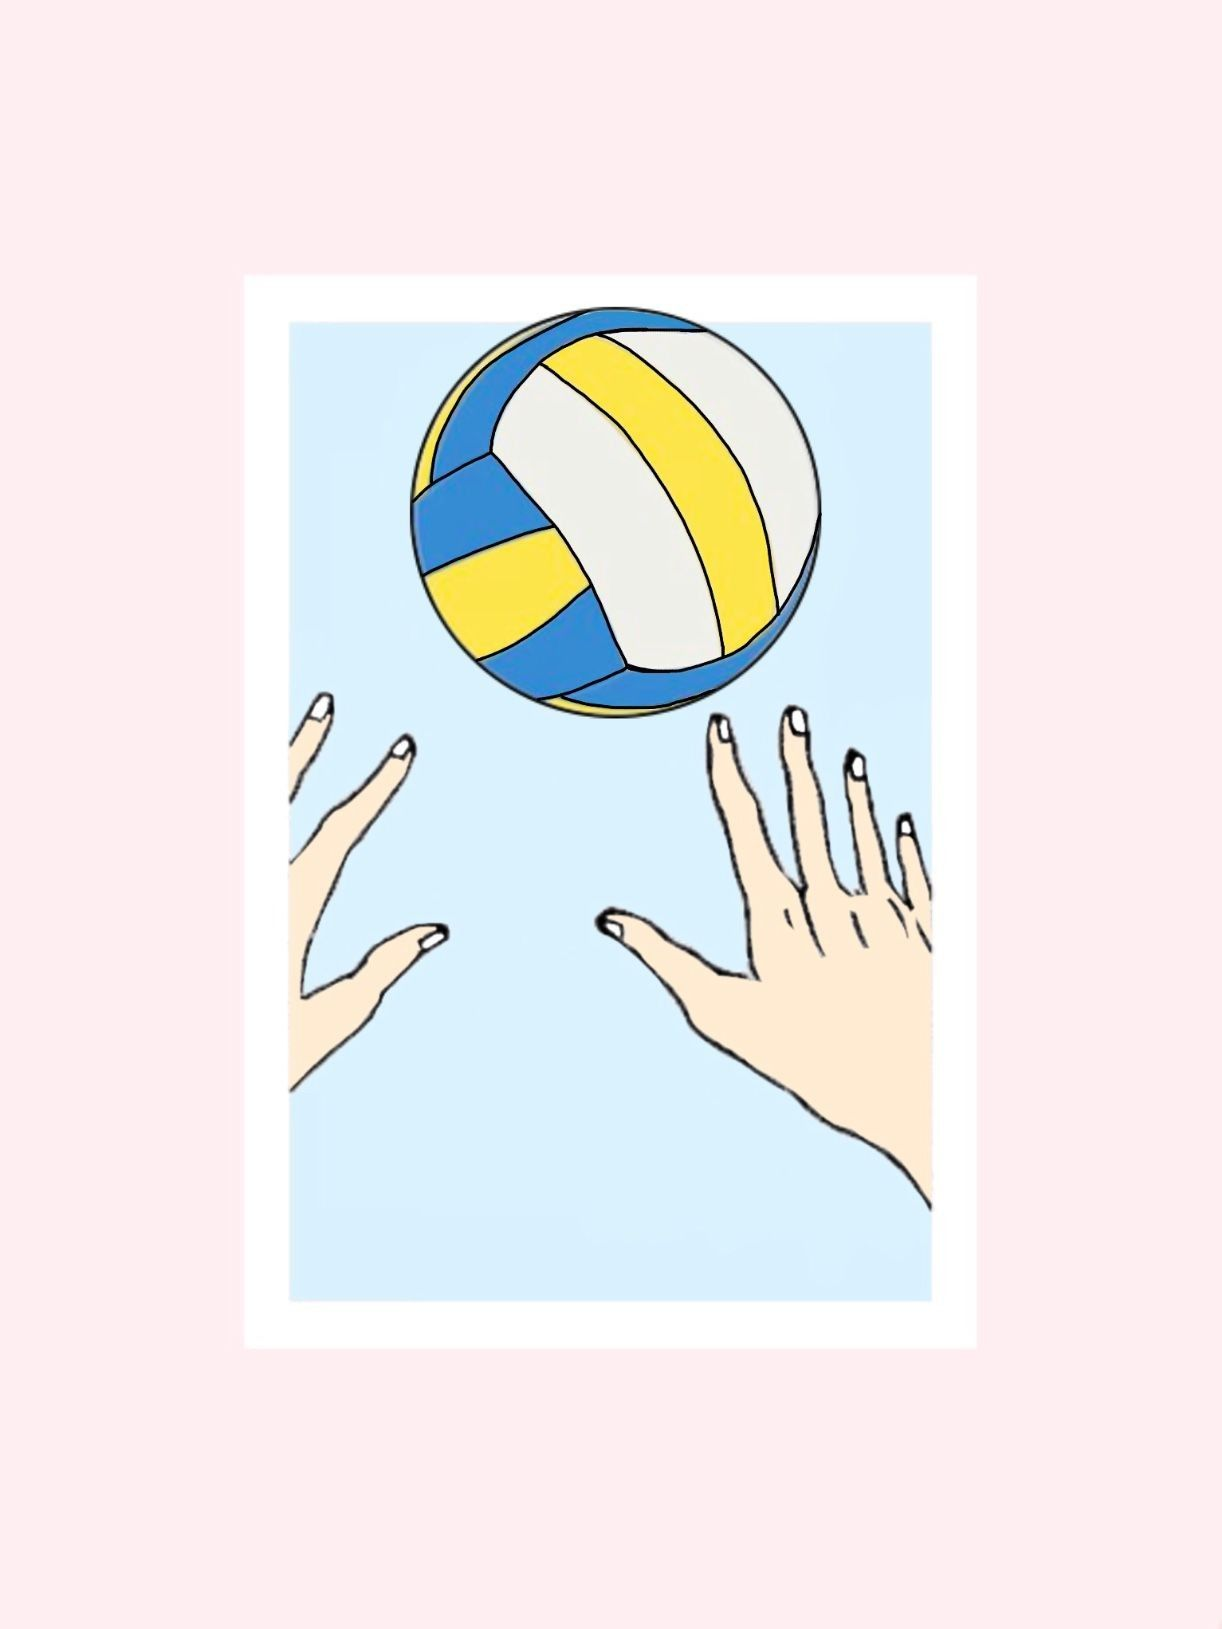 Beautiful Volleyball Wallpaper Iphone Volleyball Wallpaper Blue Wallpaper Iphone Pastel Wallpaper